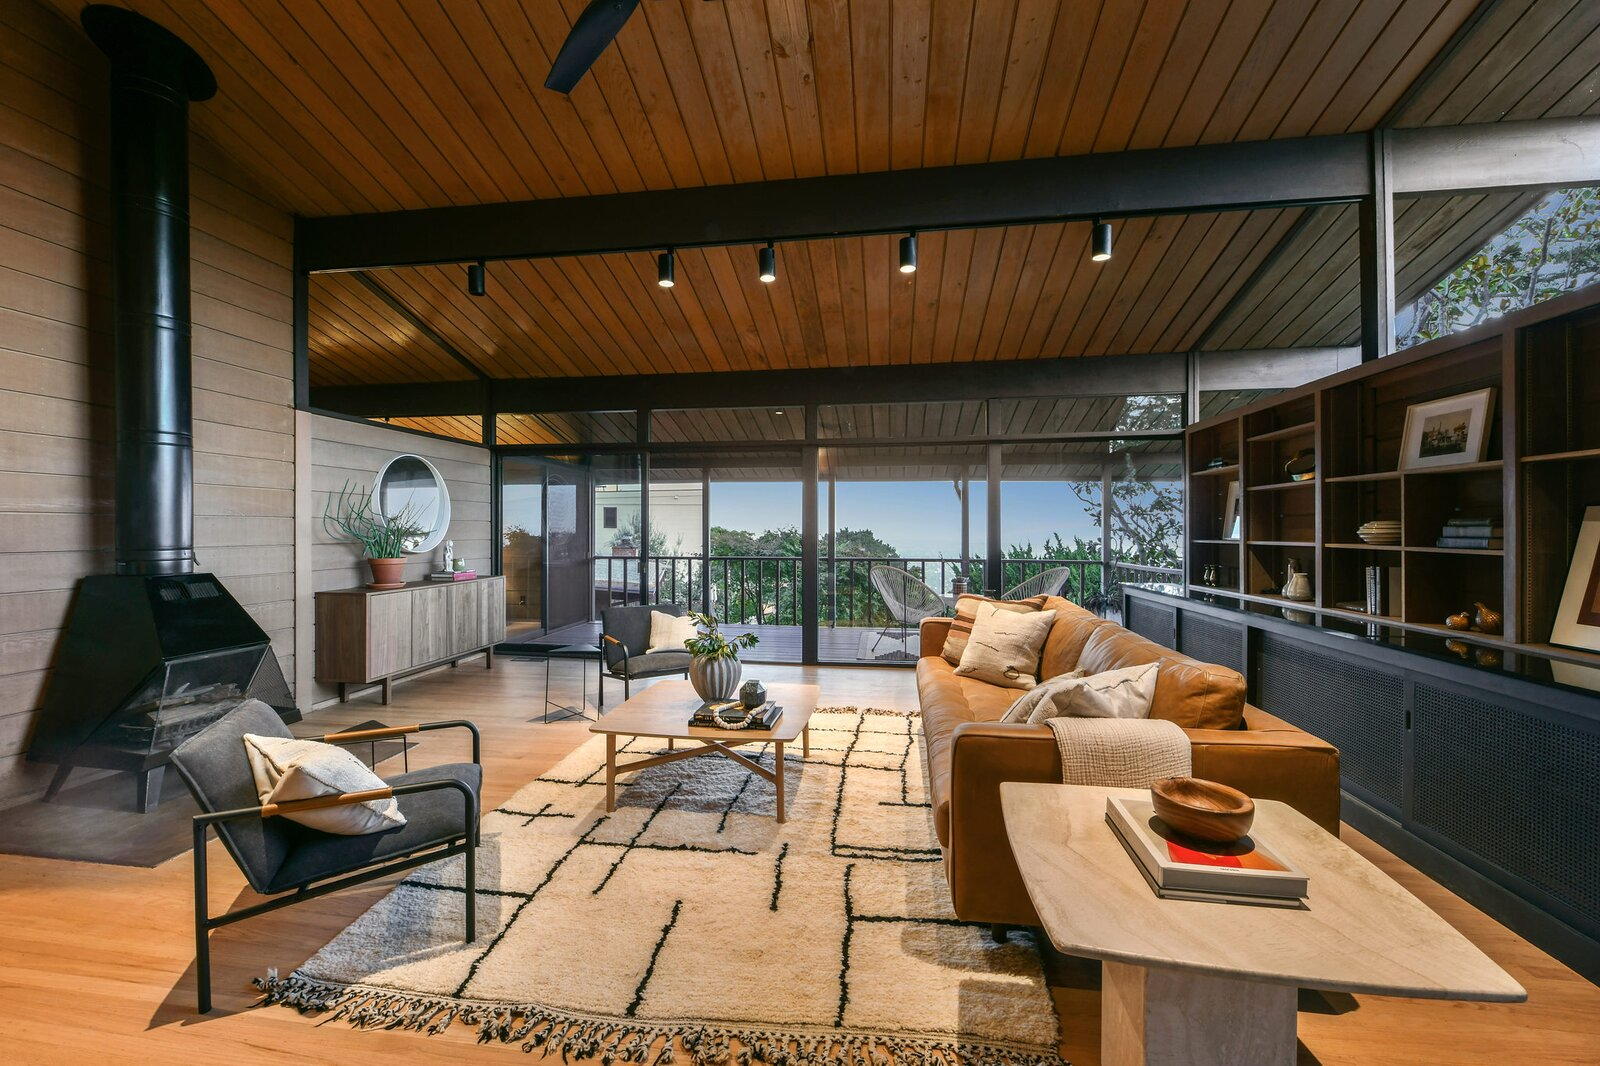 Living area in the Hargrove Residence by Roger Lee